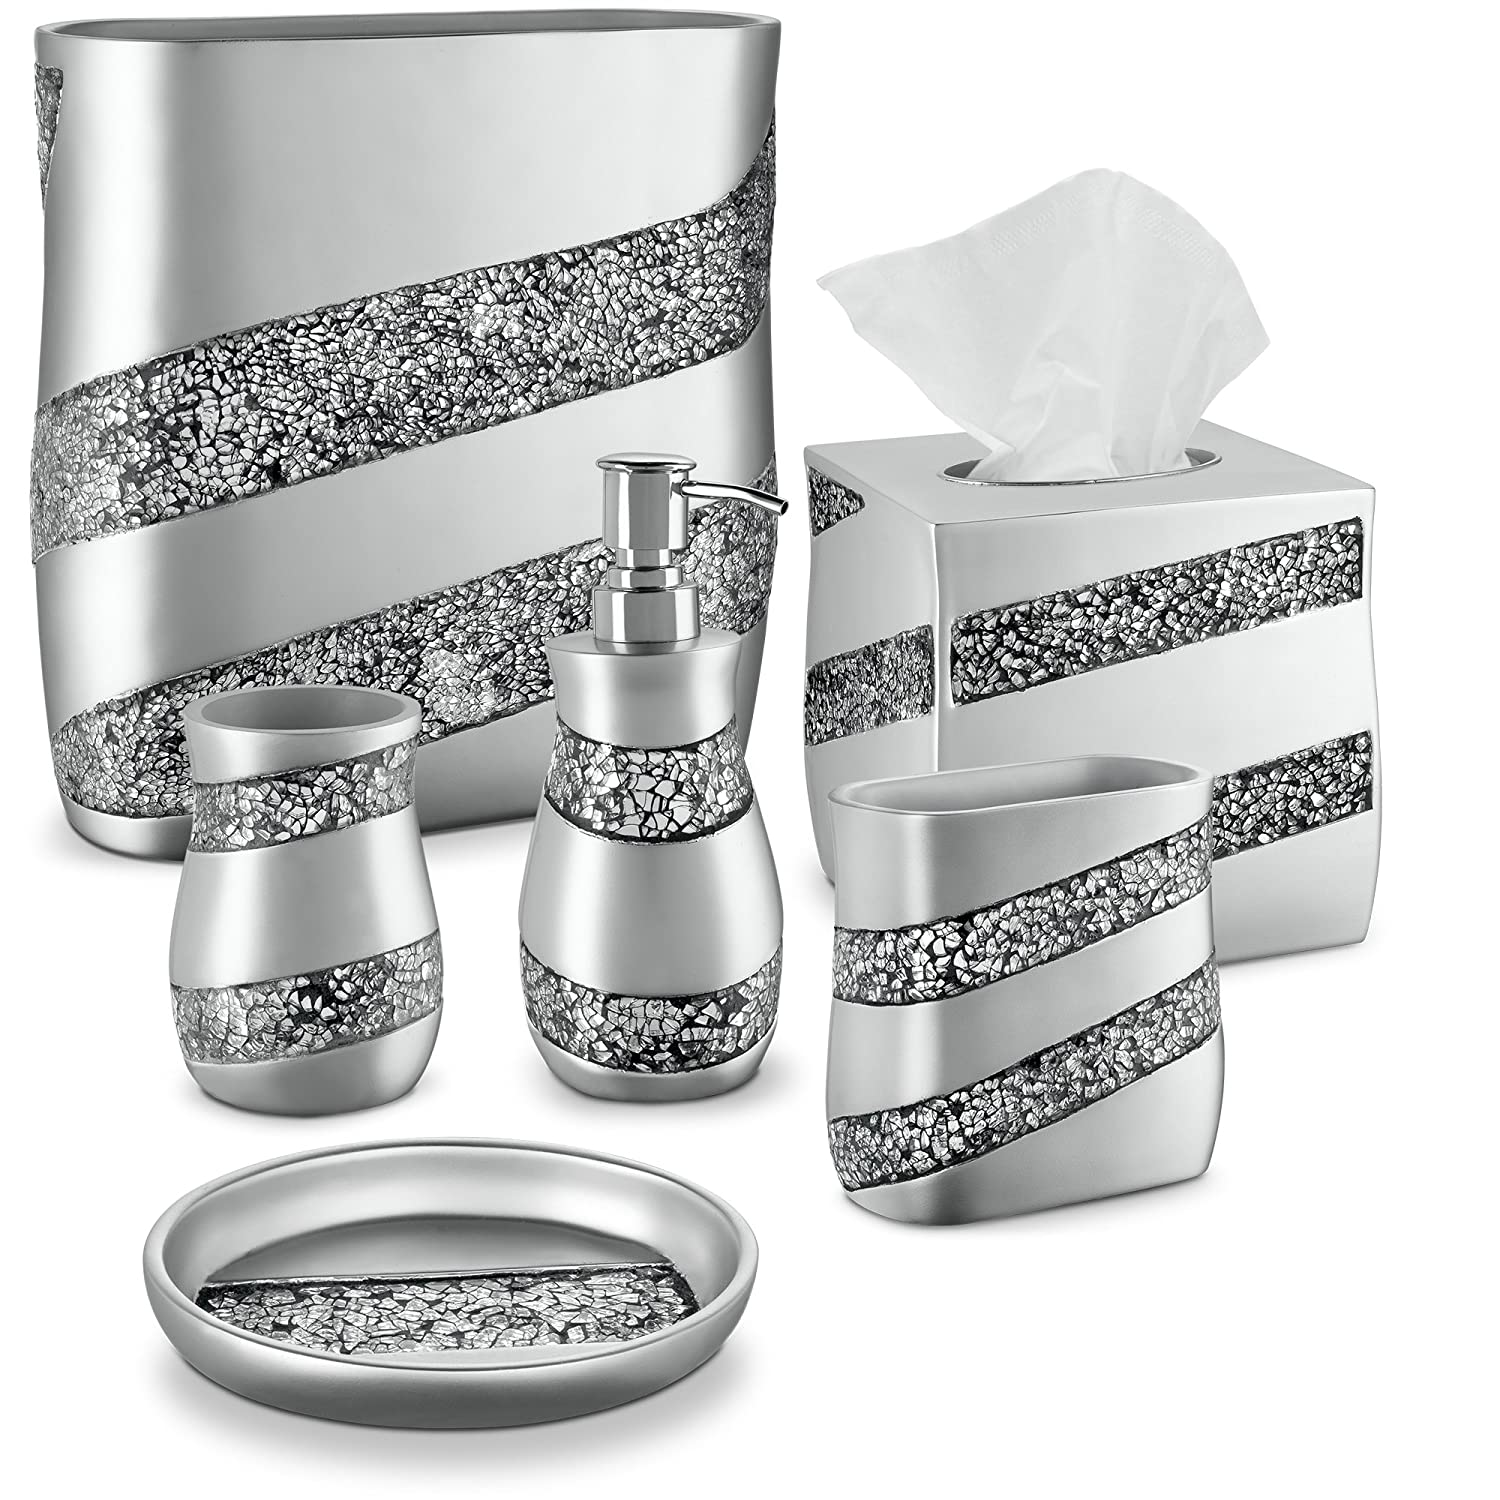 Silver mosaic fancy elegant bathroom accessories set 6 for Silver mosaic bathroom accessories